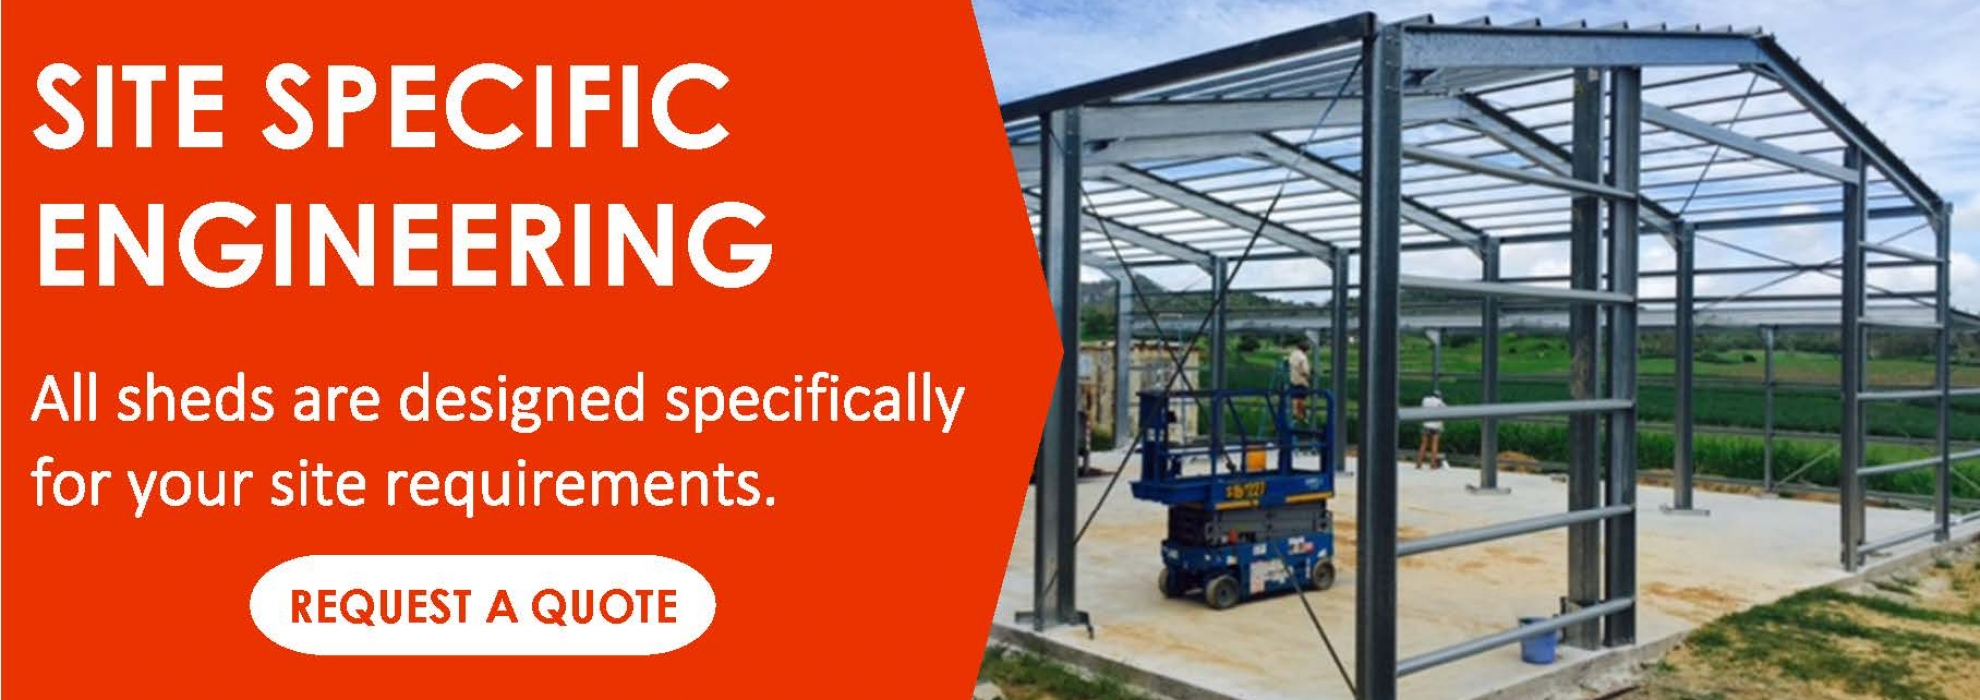 Site Specific Engineering - Request a Quote!